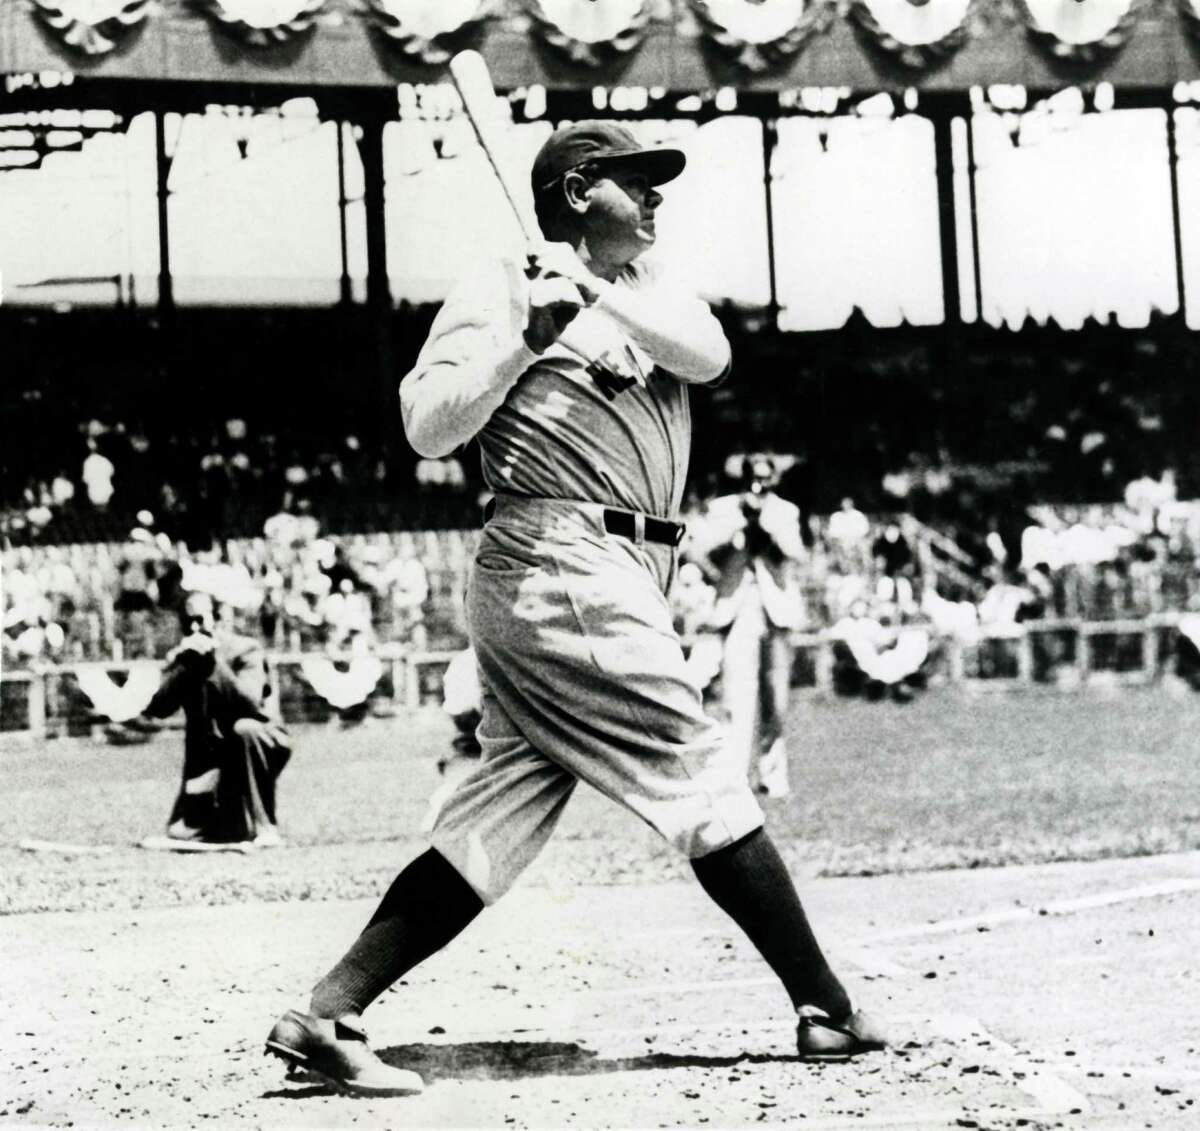 1920: Babe Ruth #3 of the New York Yankees swings at a pitch circa 1920.